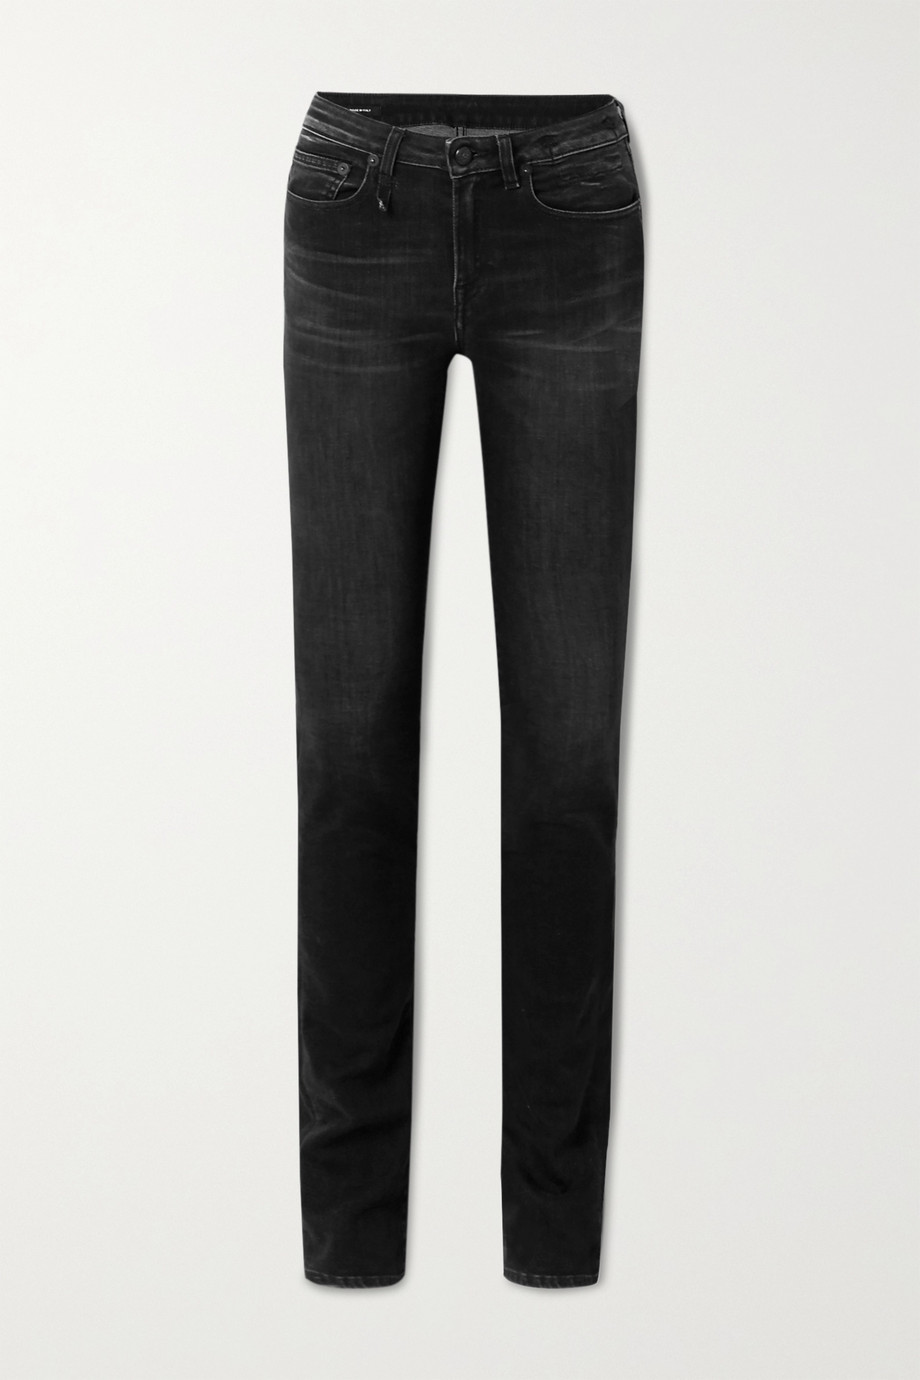 R13 Alison mid-rise skinny jeans